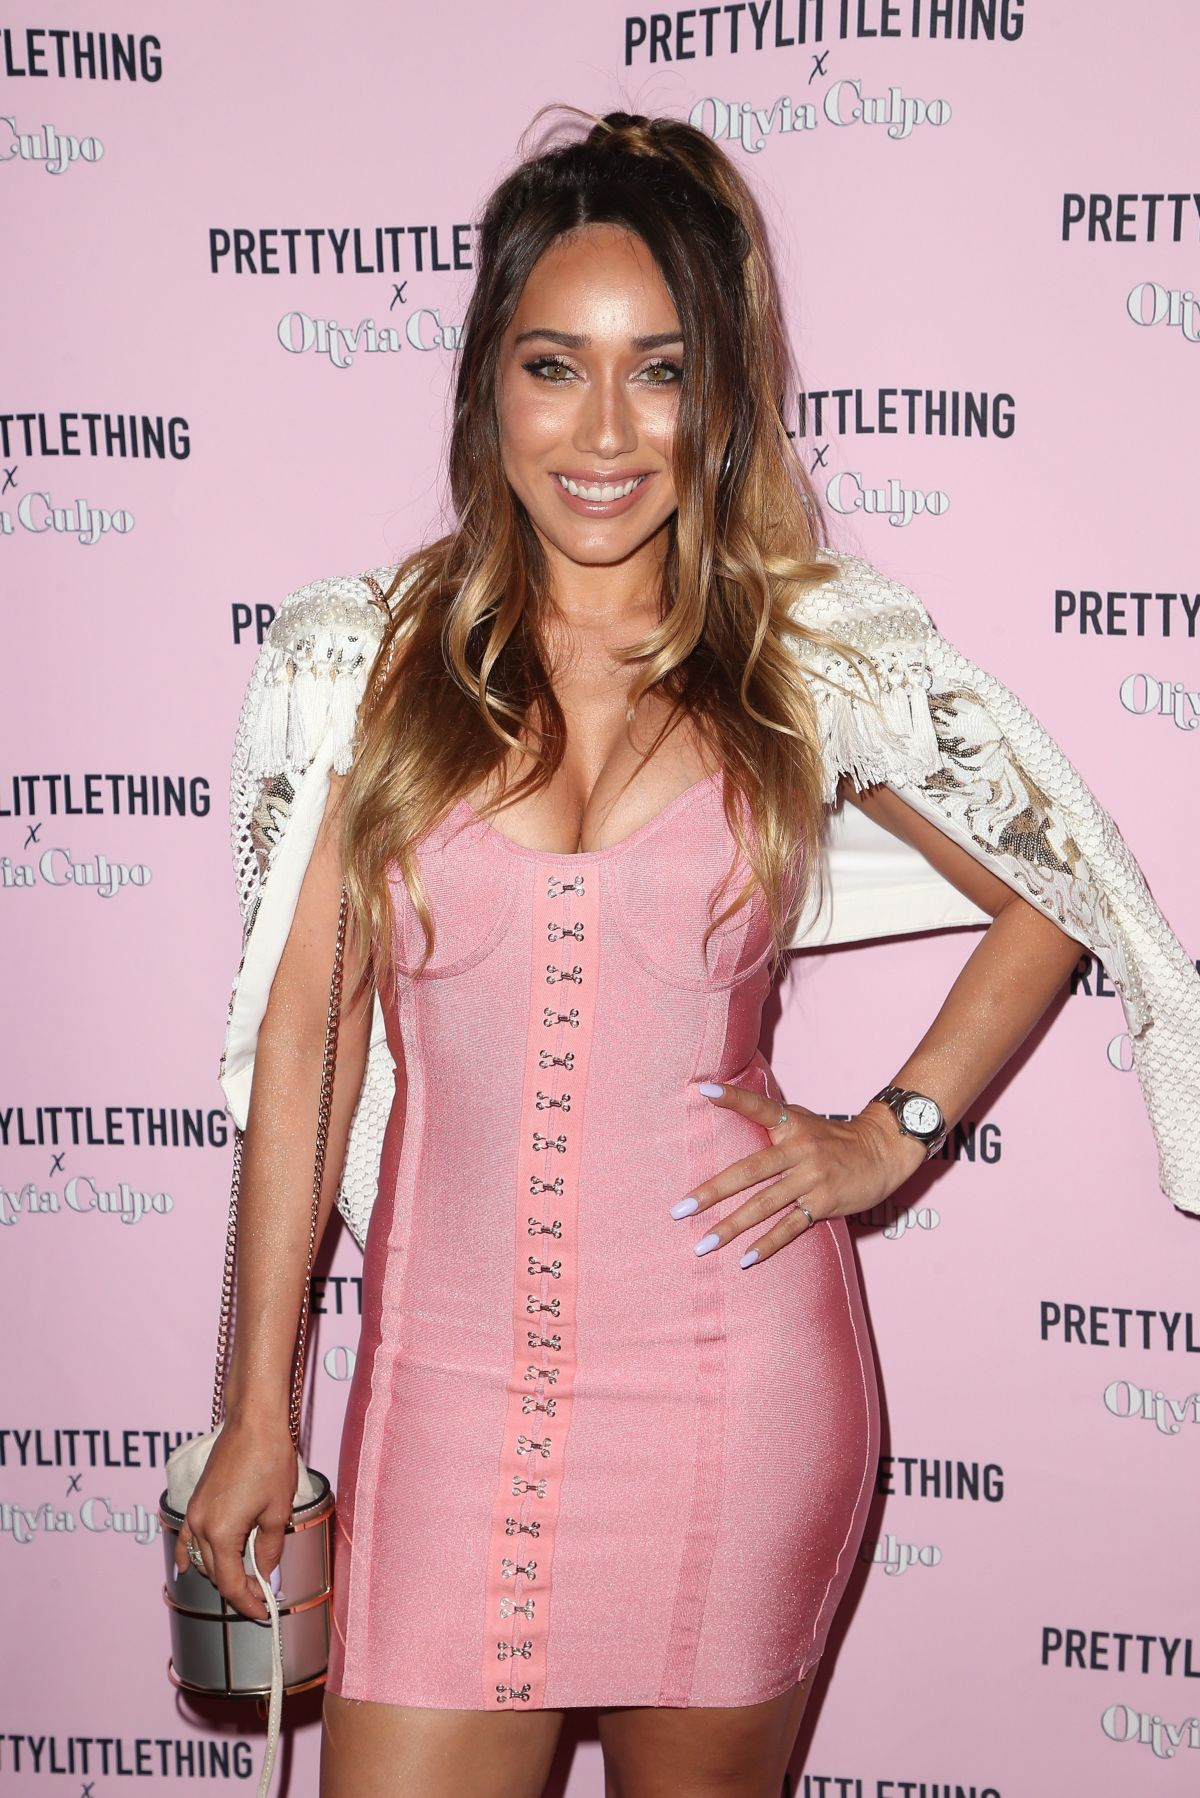 KORRINA RICO at The Prettylittlething x Olivia Culpo Launch in Hollywood 08/17/2017